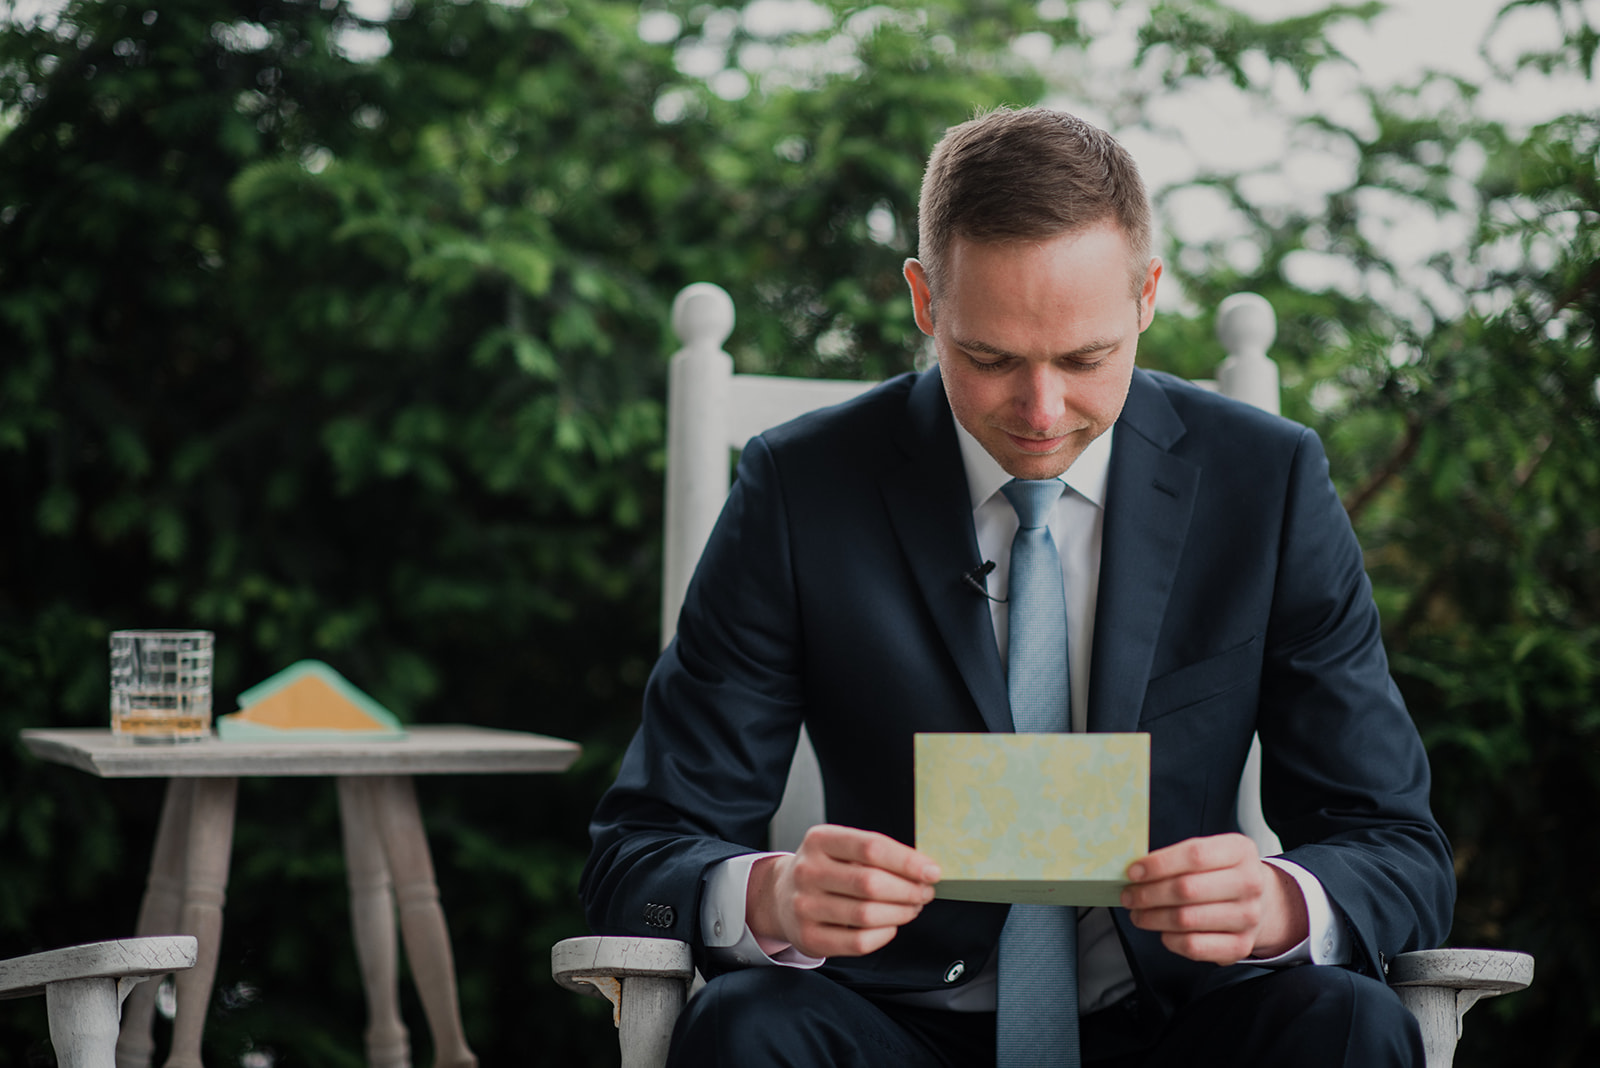 A groom reads a letter from his bride on the front porch of the house at Blue Hill Farm in Waterford, VA.